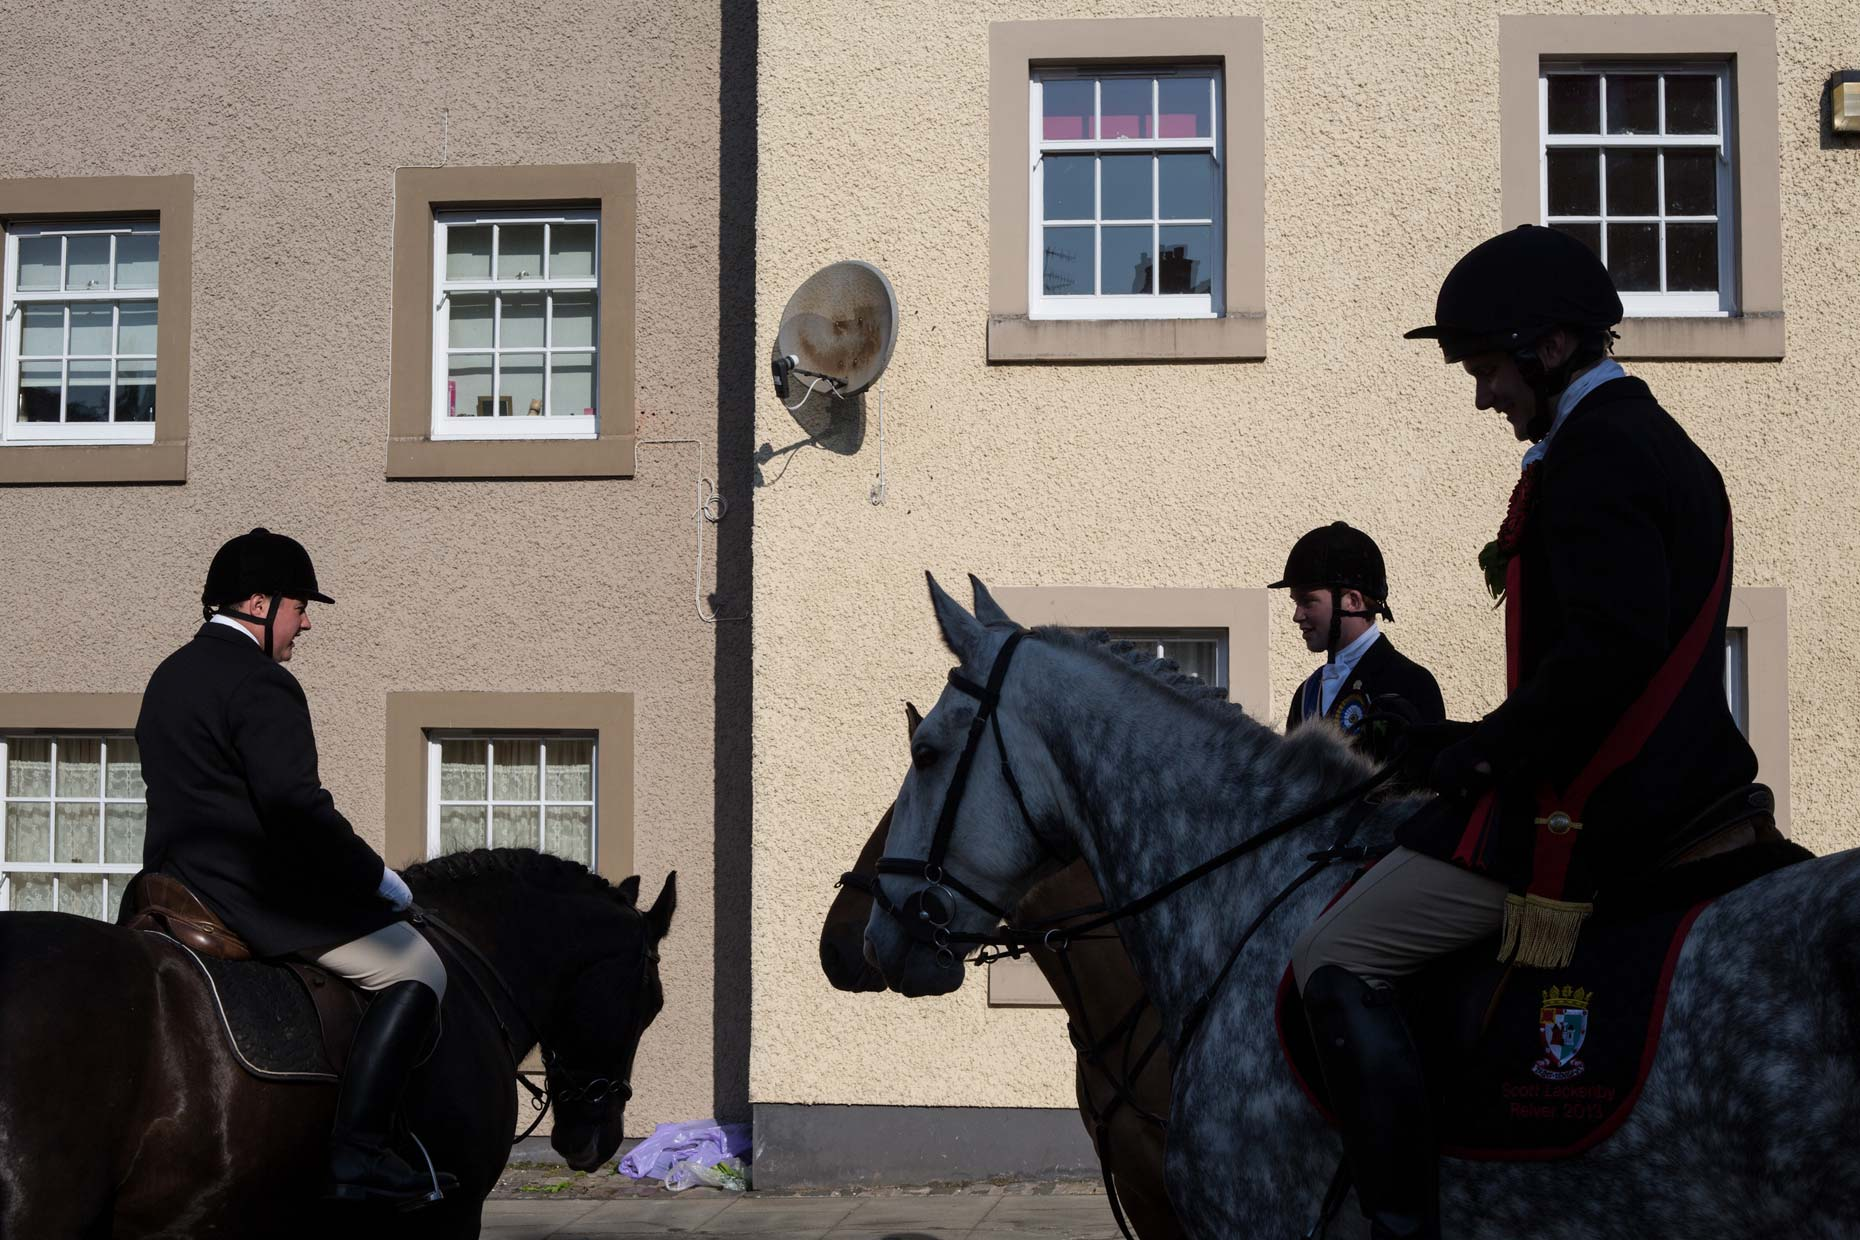 Common Riding in Hawick, Scotland photographer